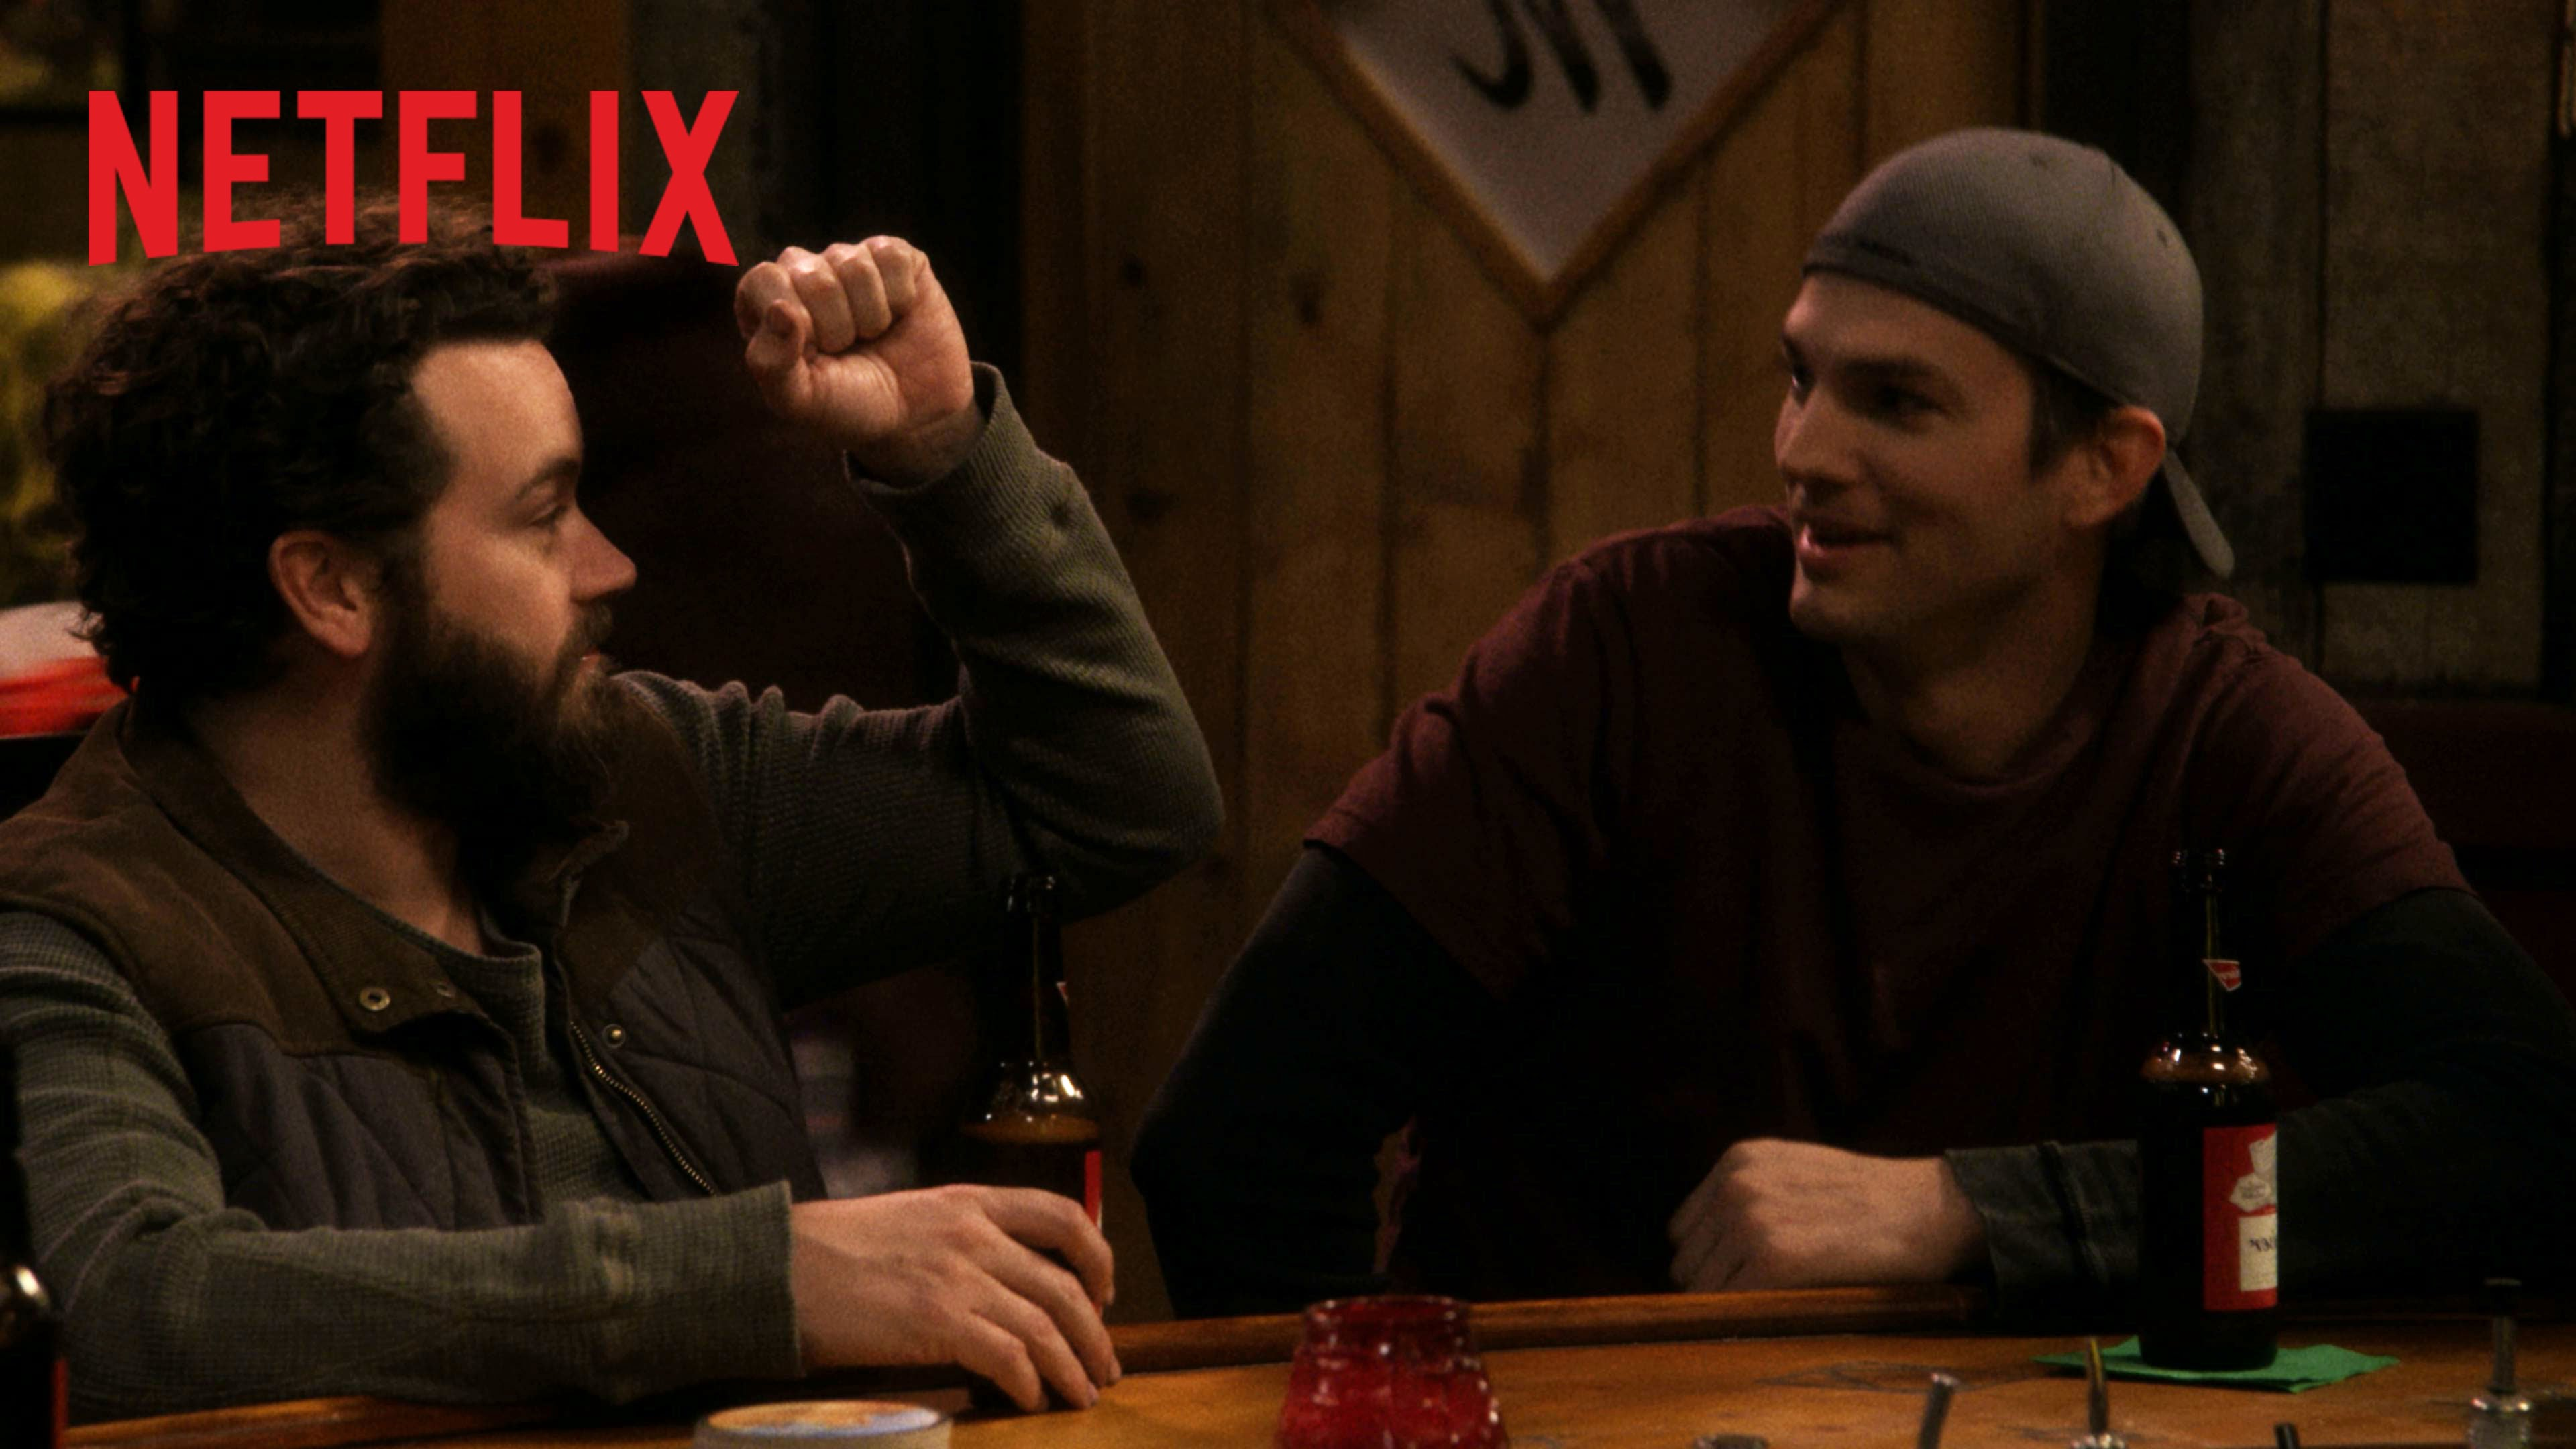 how to make gifs of netflix shows